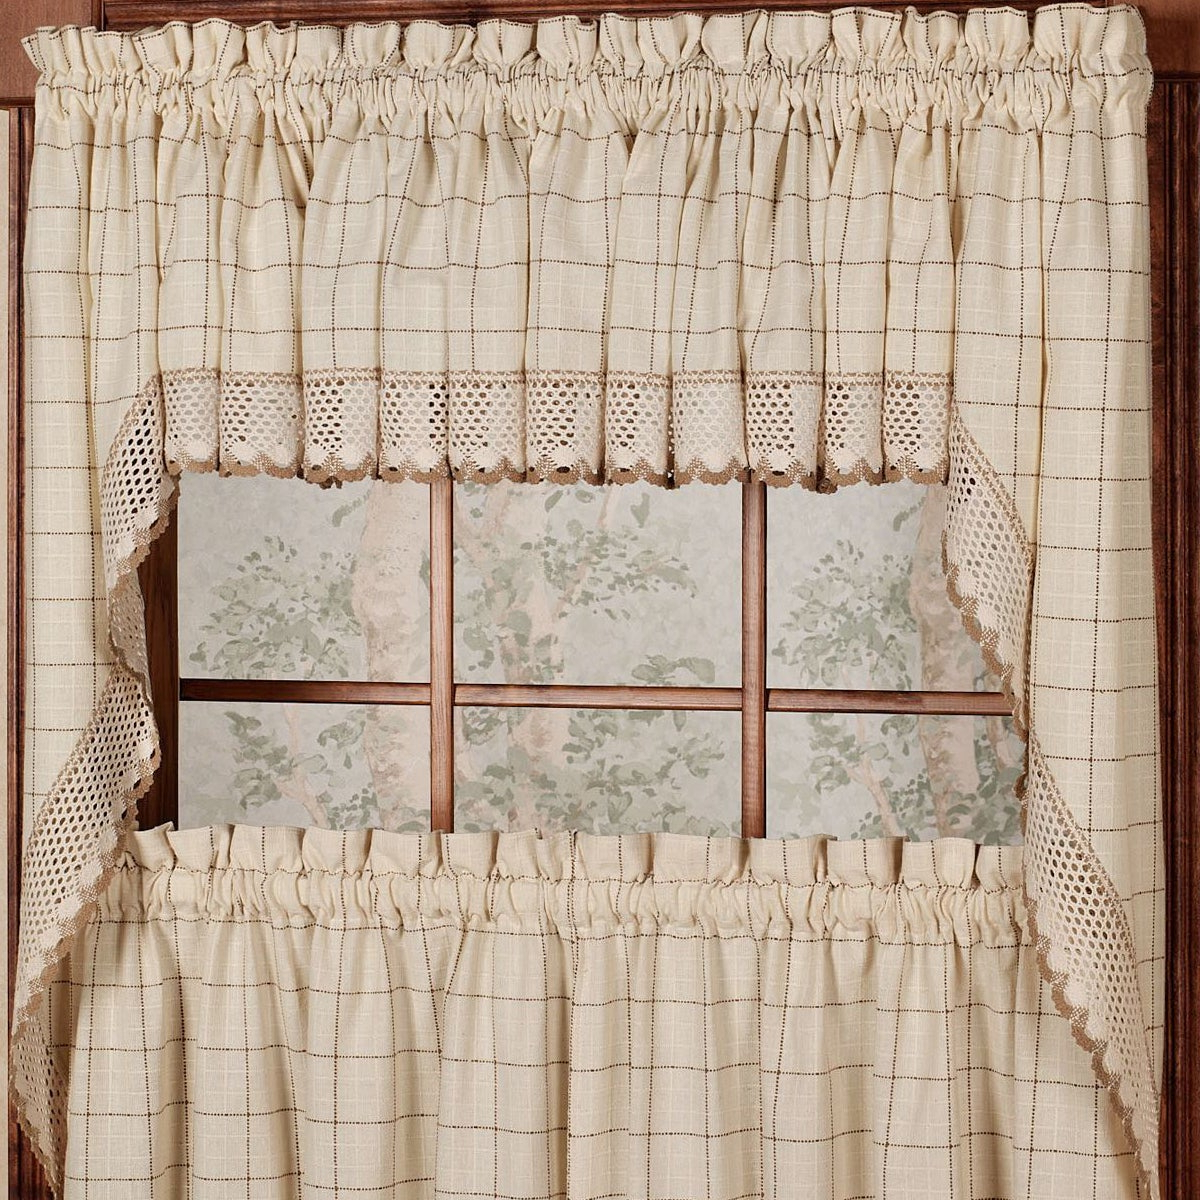 Cotton Classic Toast Window Pane Pattern And Crotchet Trim Tiers, Swags And Valance Options Within Famous Cotton Classic Toast Window Pane Pattern And Crotchet Trim Tiers (View 2 of 20)